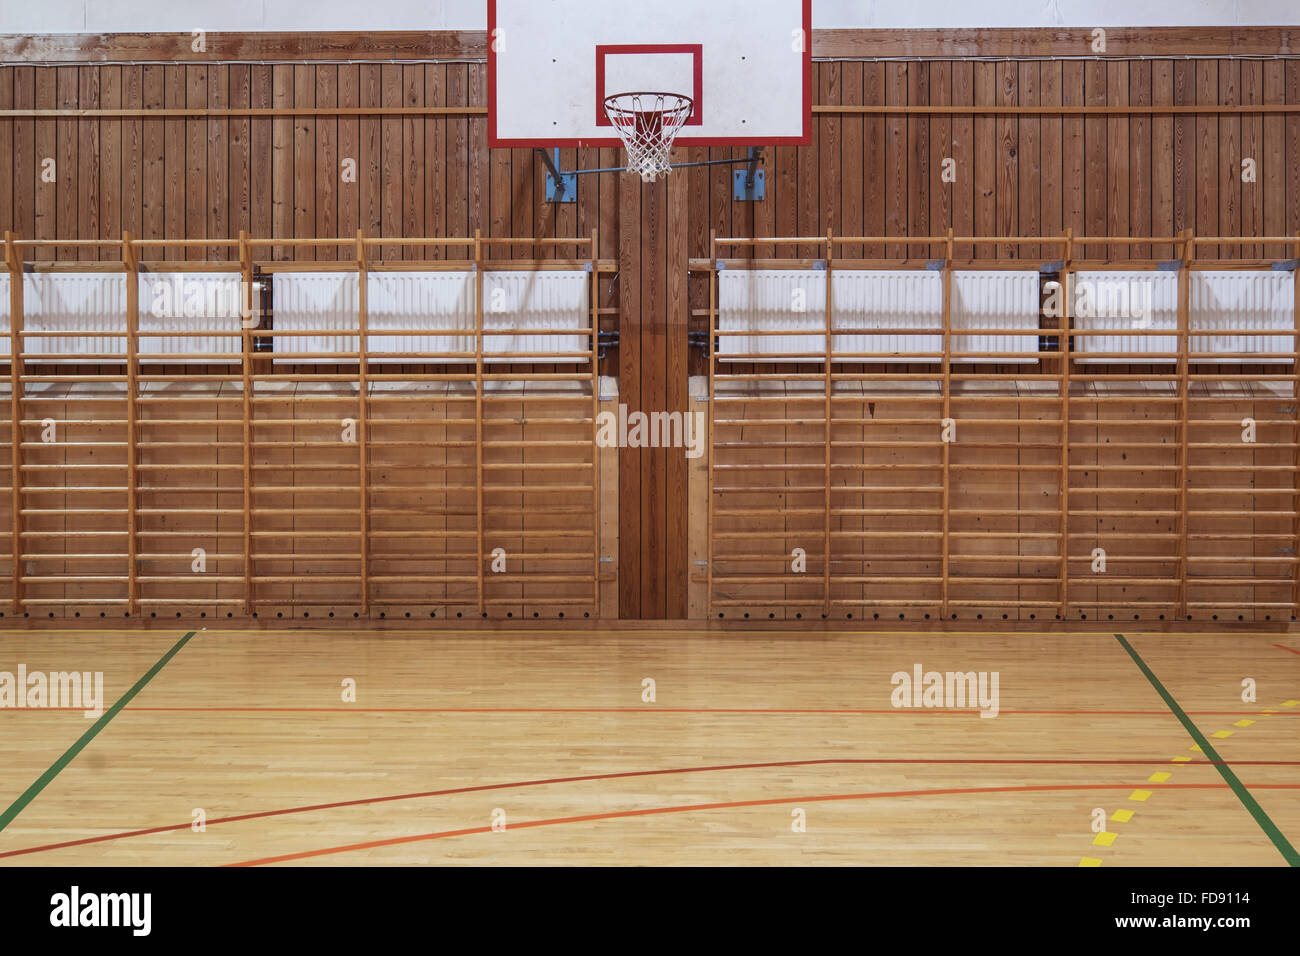 View from center court in old gymhall - Stock Image